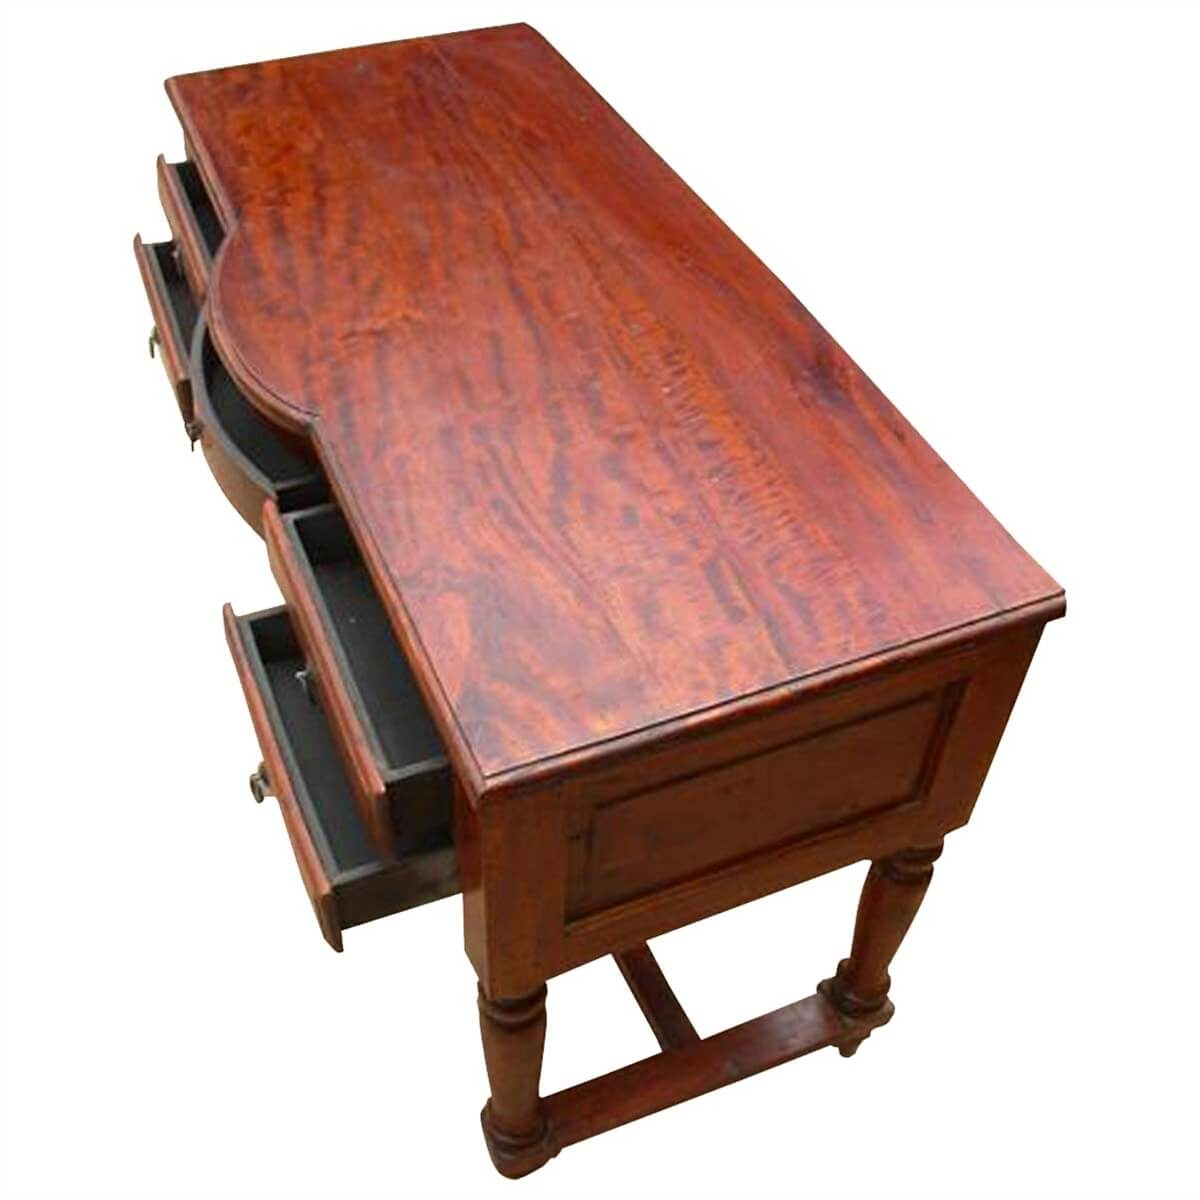 Solid Wood Console Tables With Storage ~ Solid wood storage drawers writing desk console table